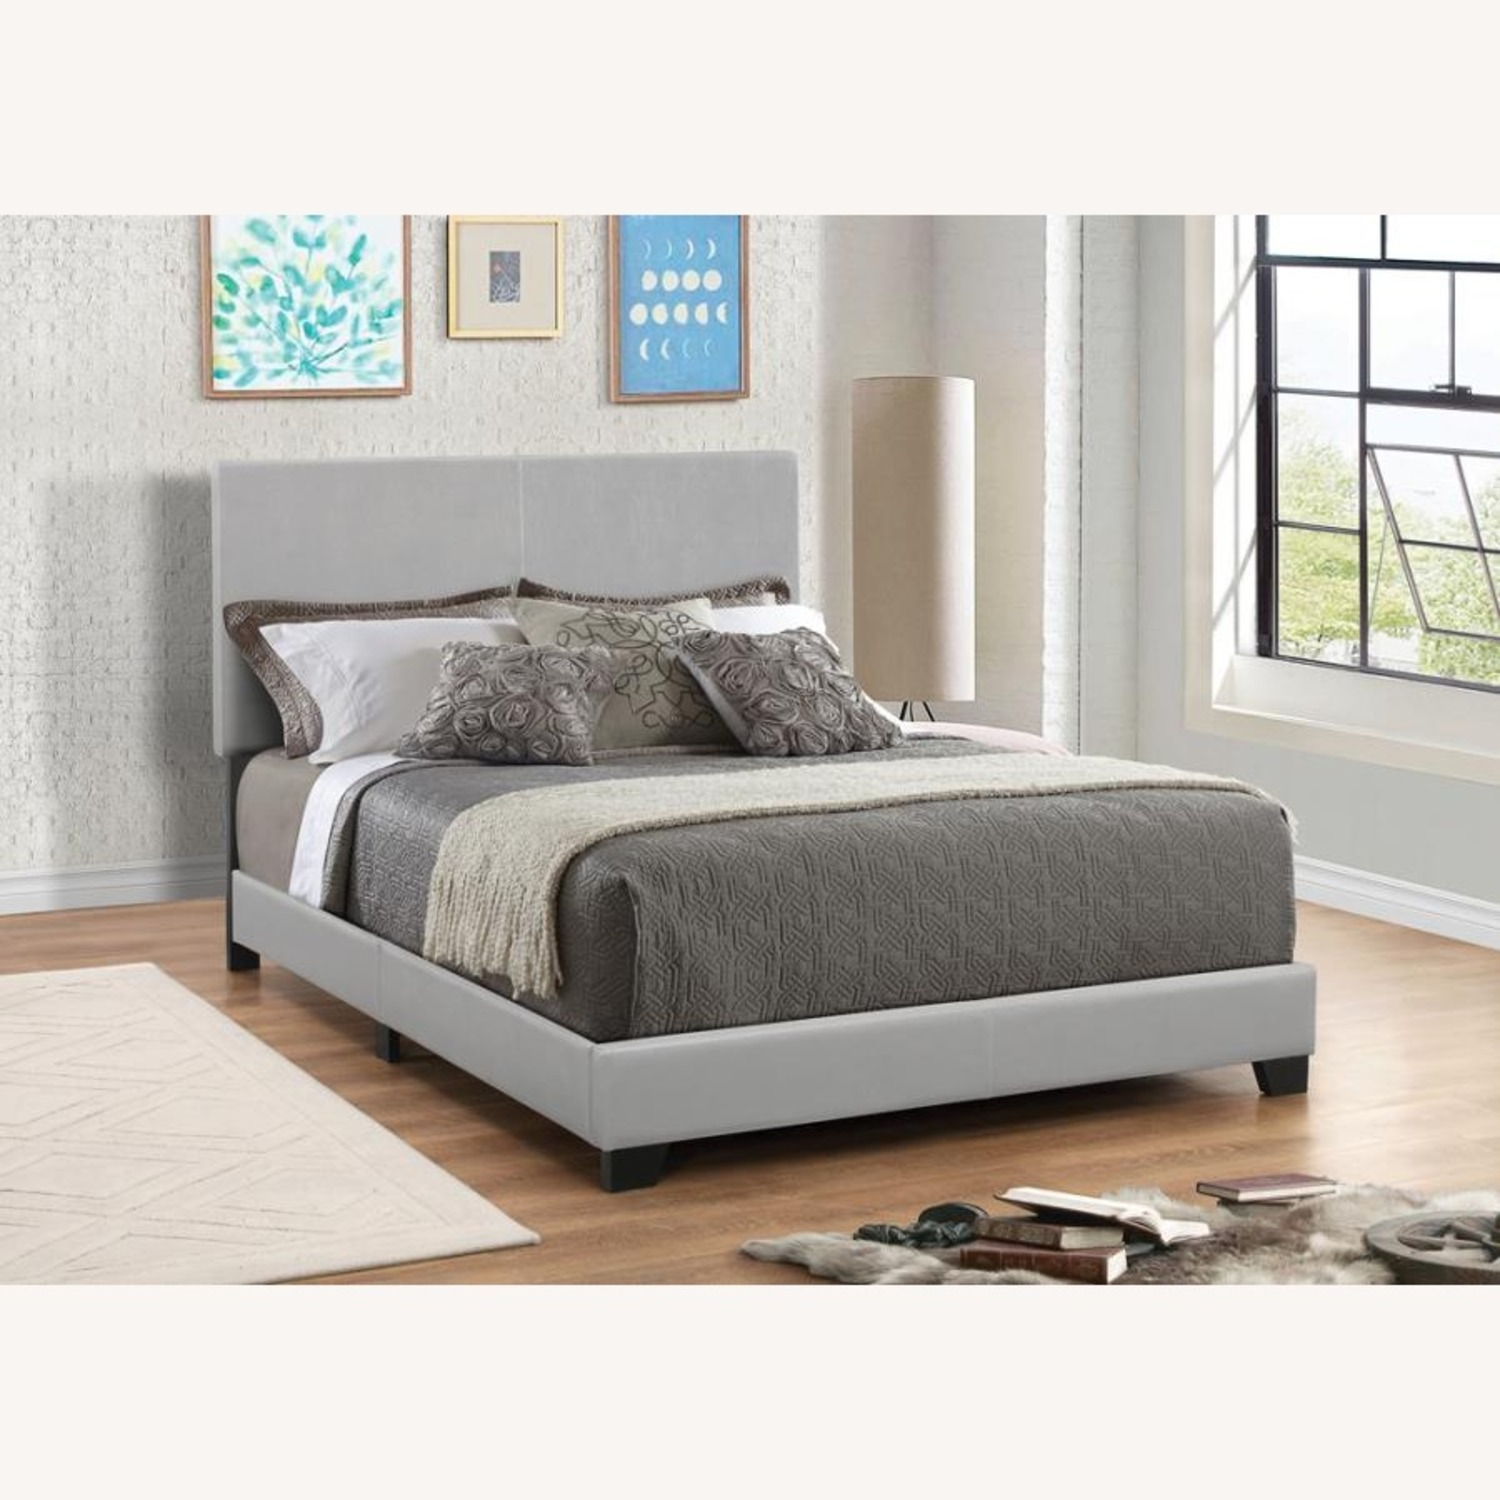 Full Bed Upholstered In Grey Leatherette Finish - image-2